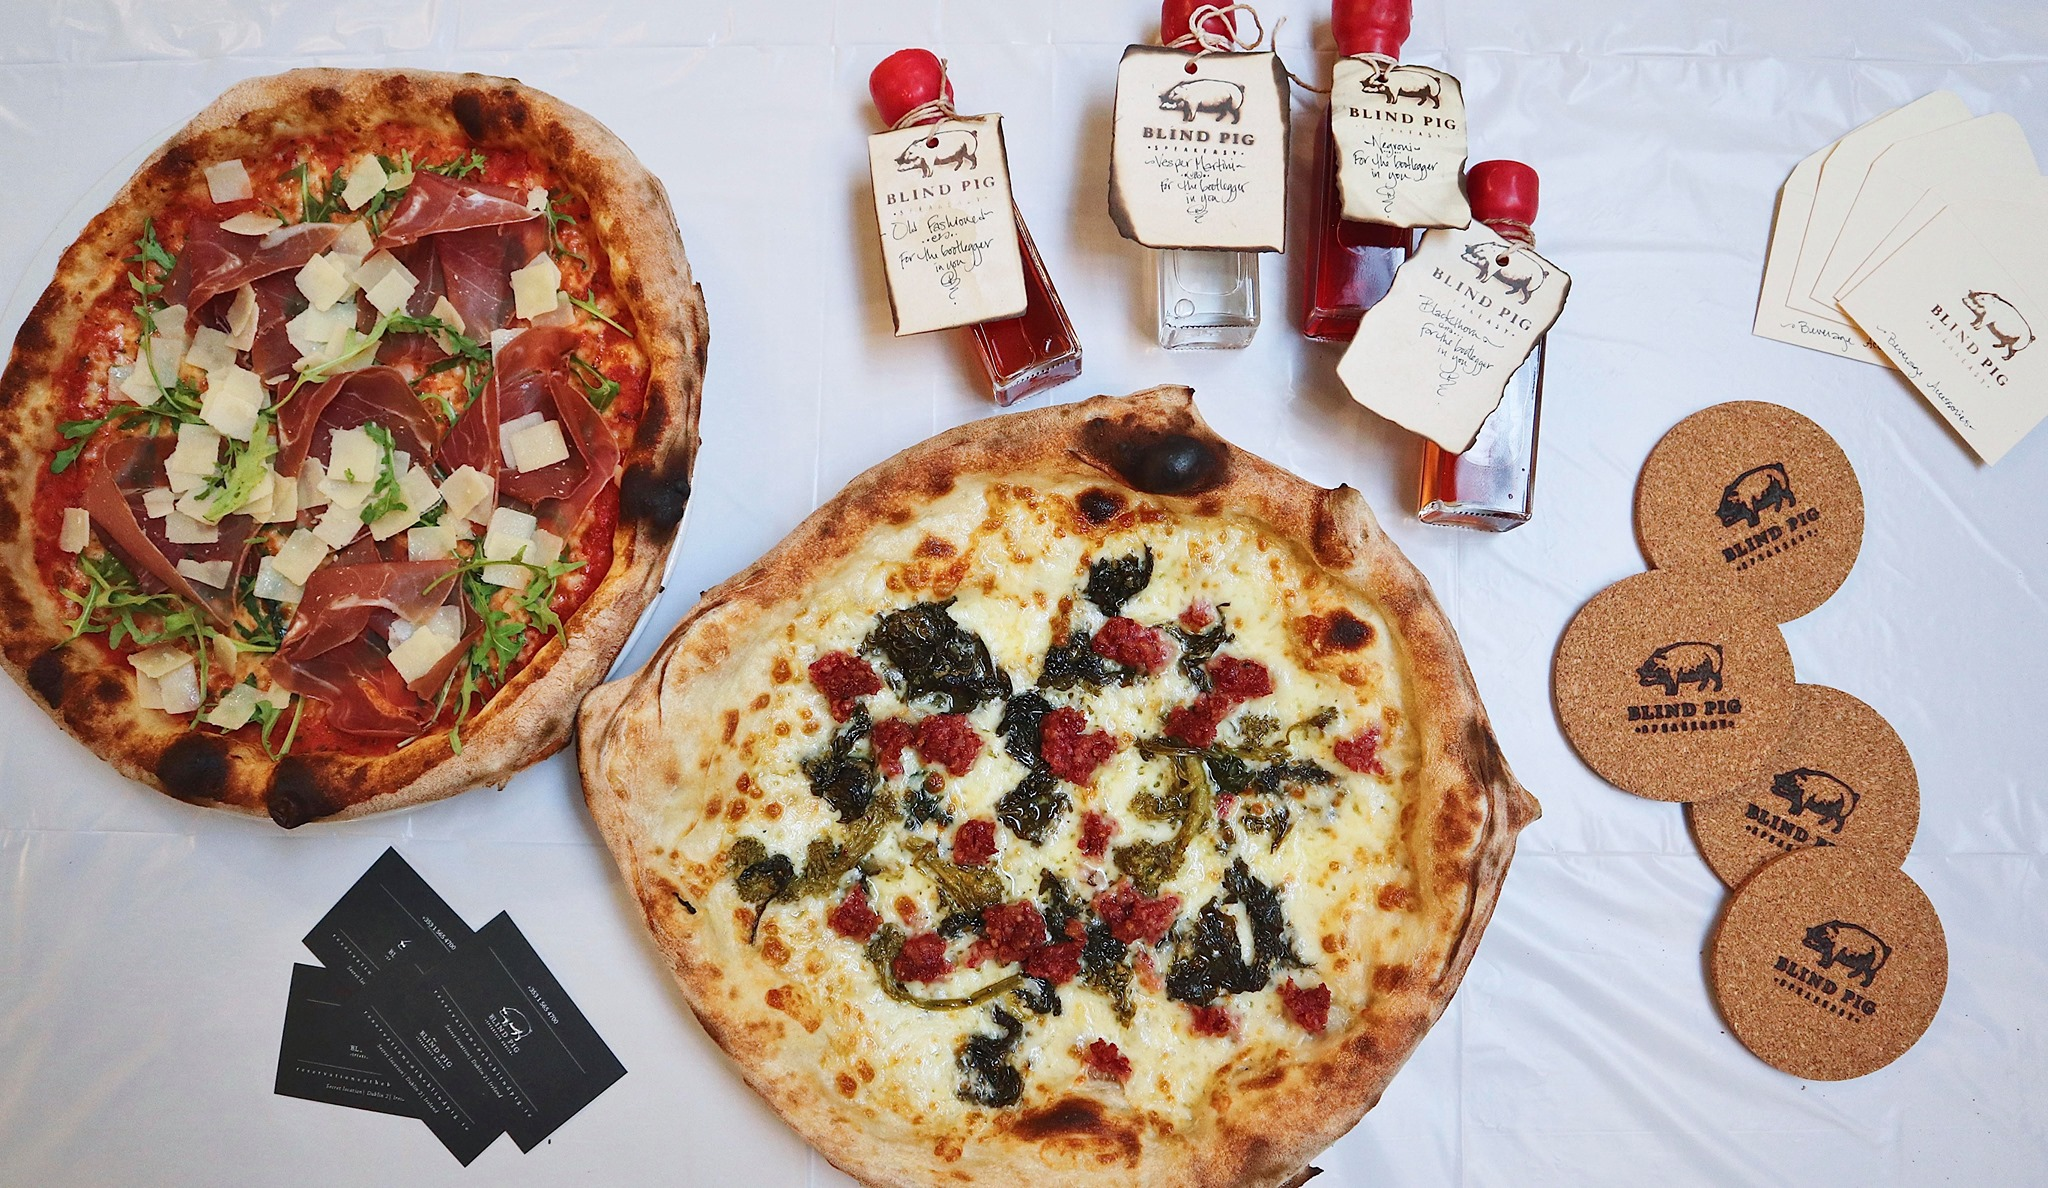 An image of two pizzas and some drinks